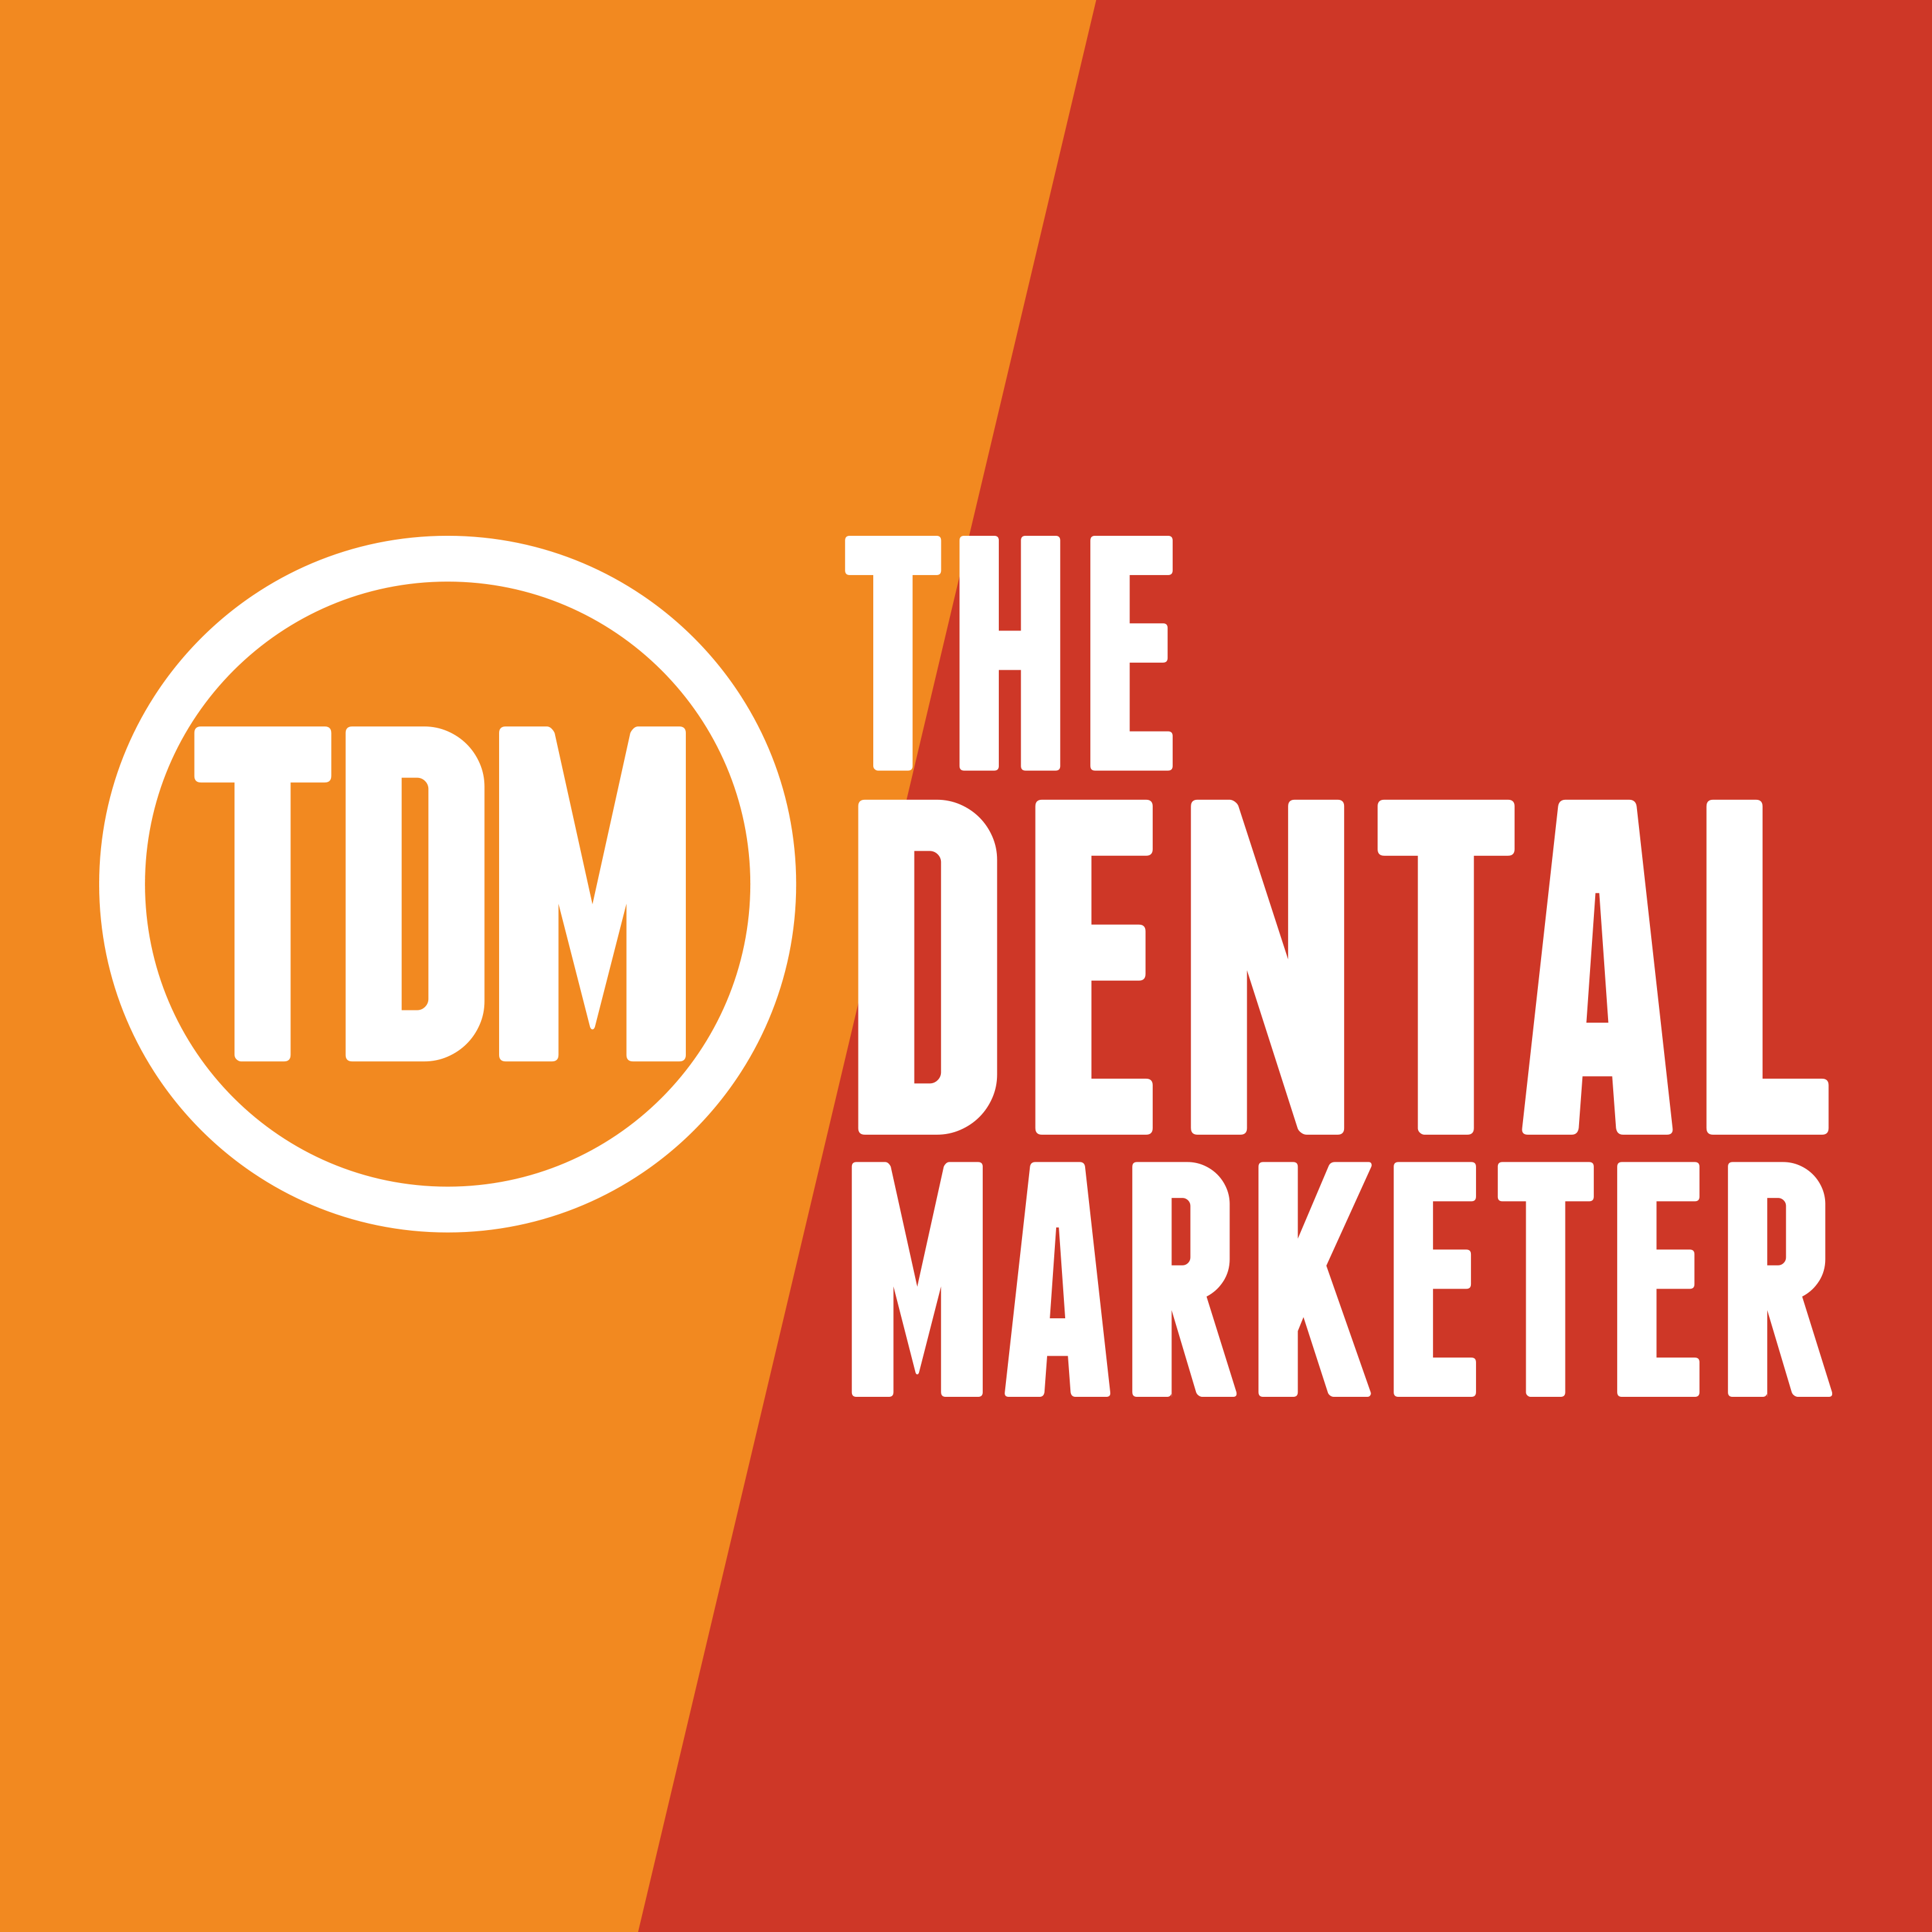 The Dental Marketer